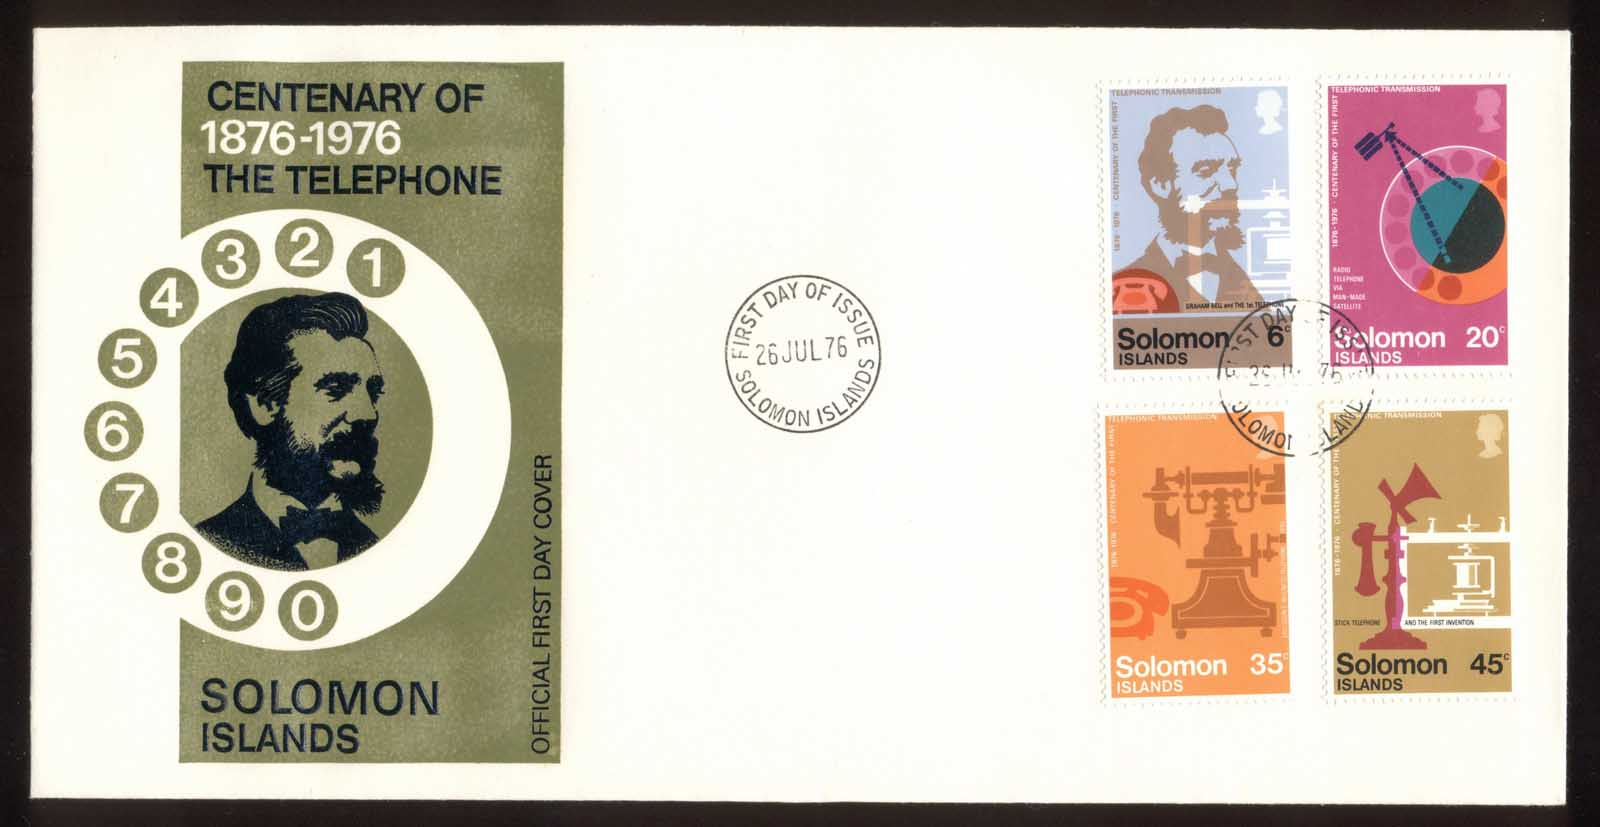 Solomon Is 1976 Telephone Centenary, Alexander Graham Bell FDC